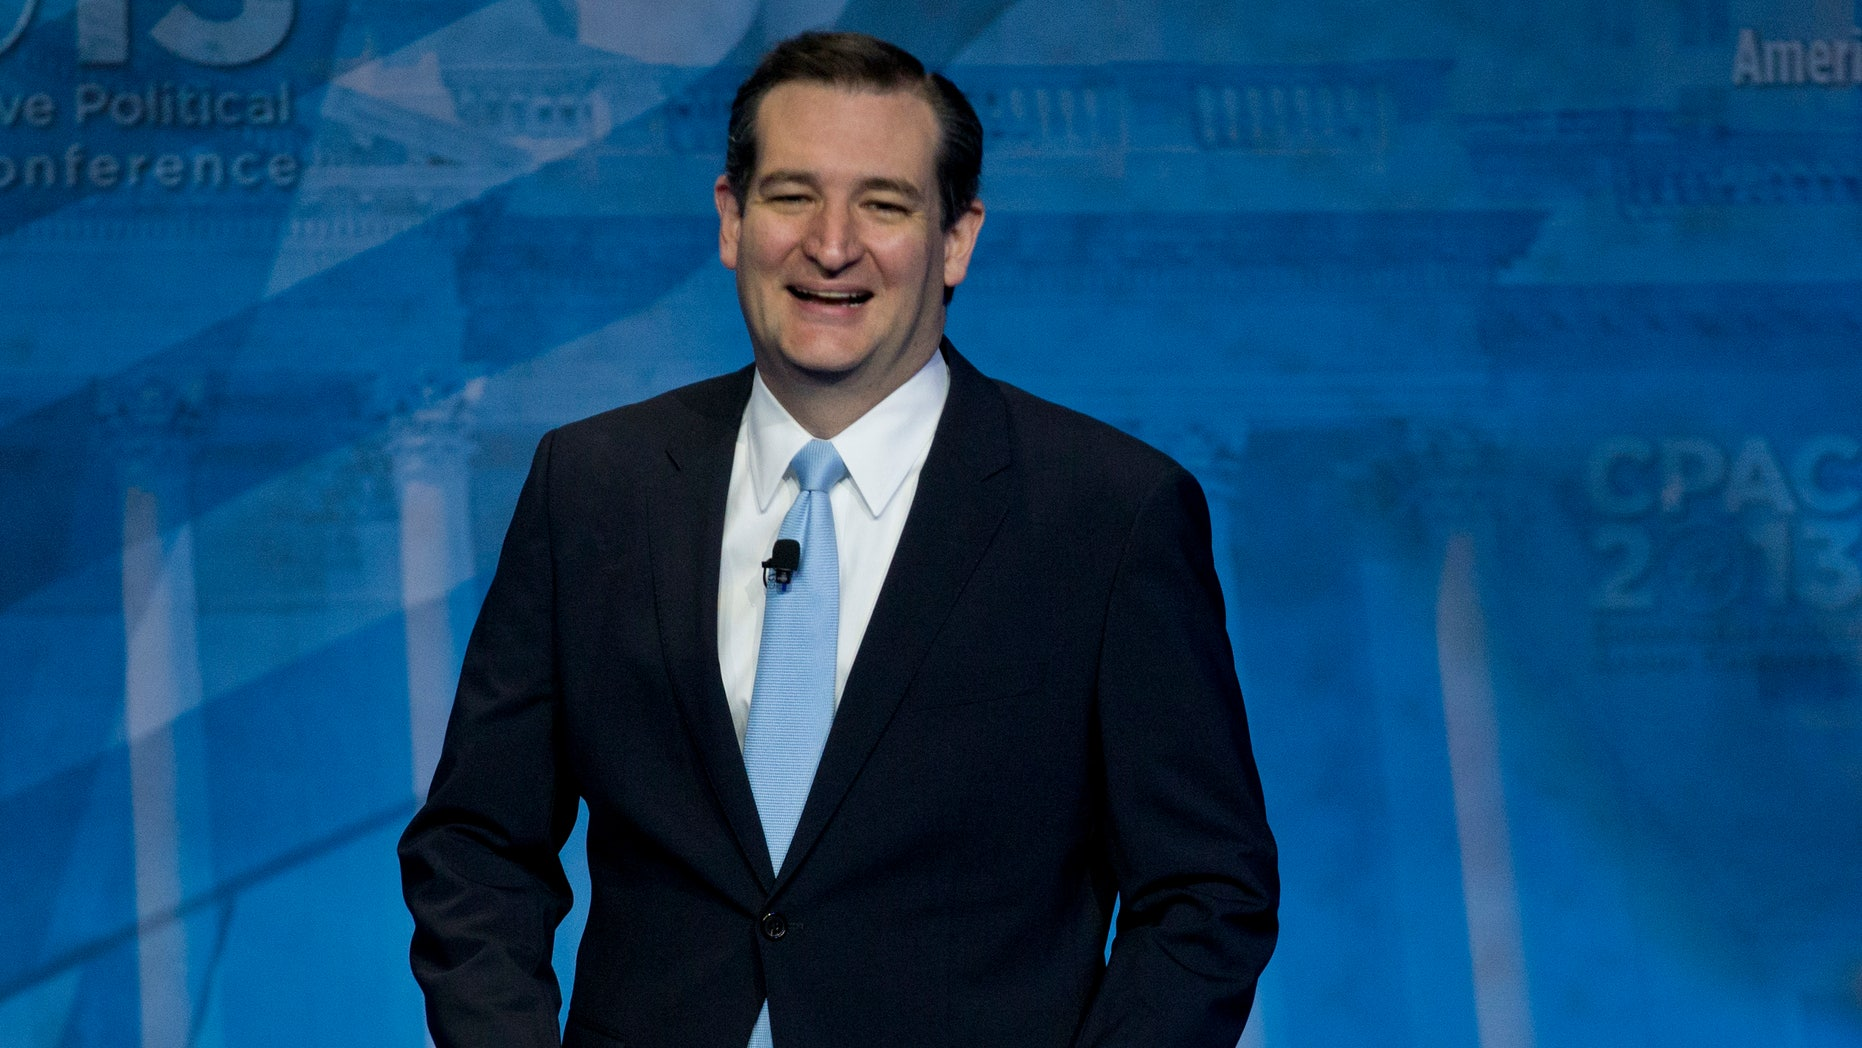 Sen. Ted Cruz, R-Texas, arrives to speak at the 40th annual Conservative Political Action Conference in National Harbor, Md., Saturday, March 16, 2013.